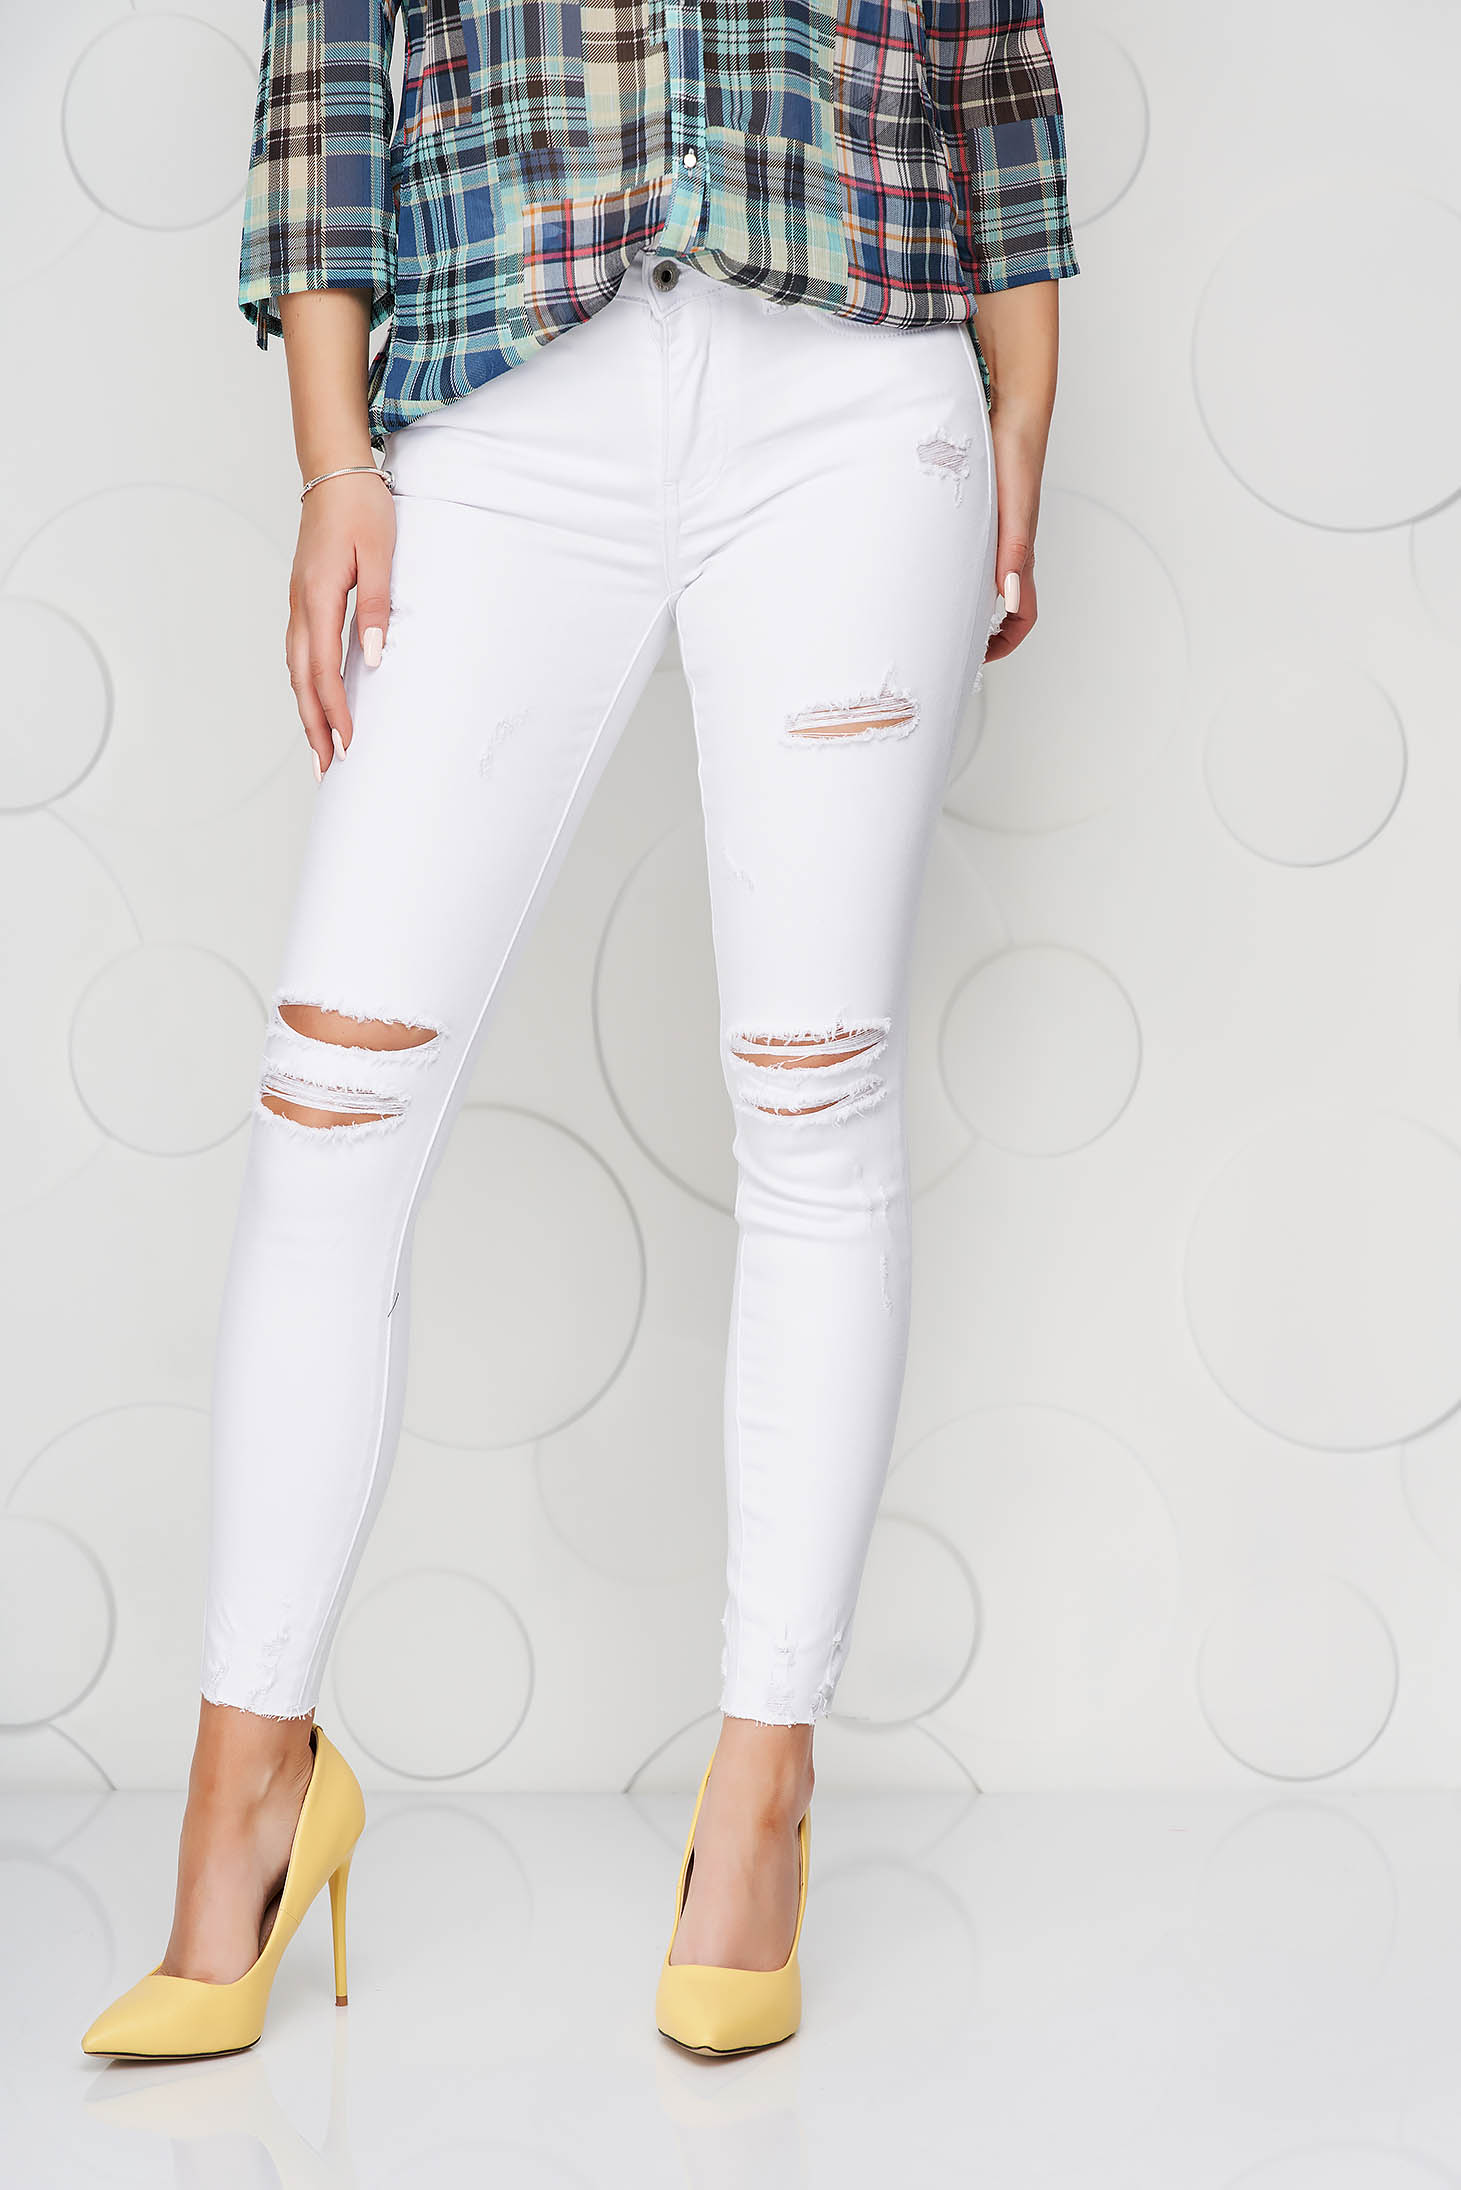 White jeans denim high waisted skinny jeans